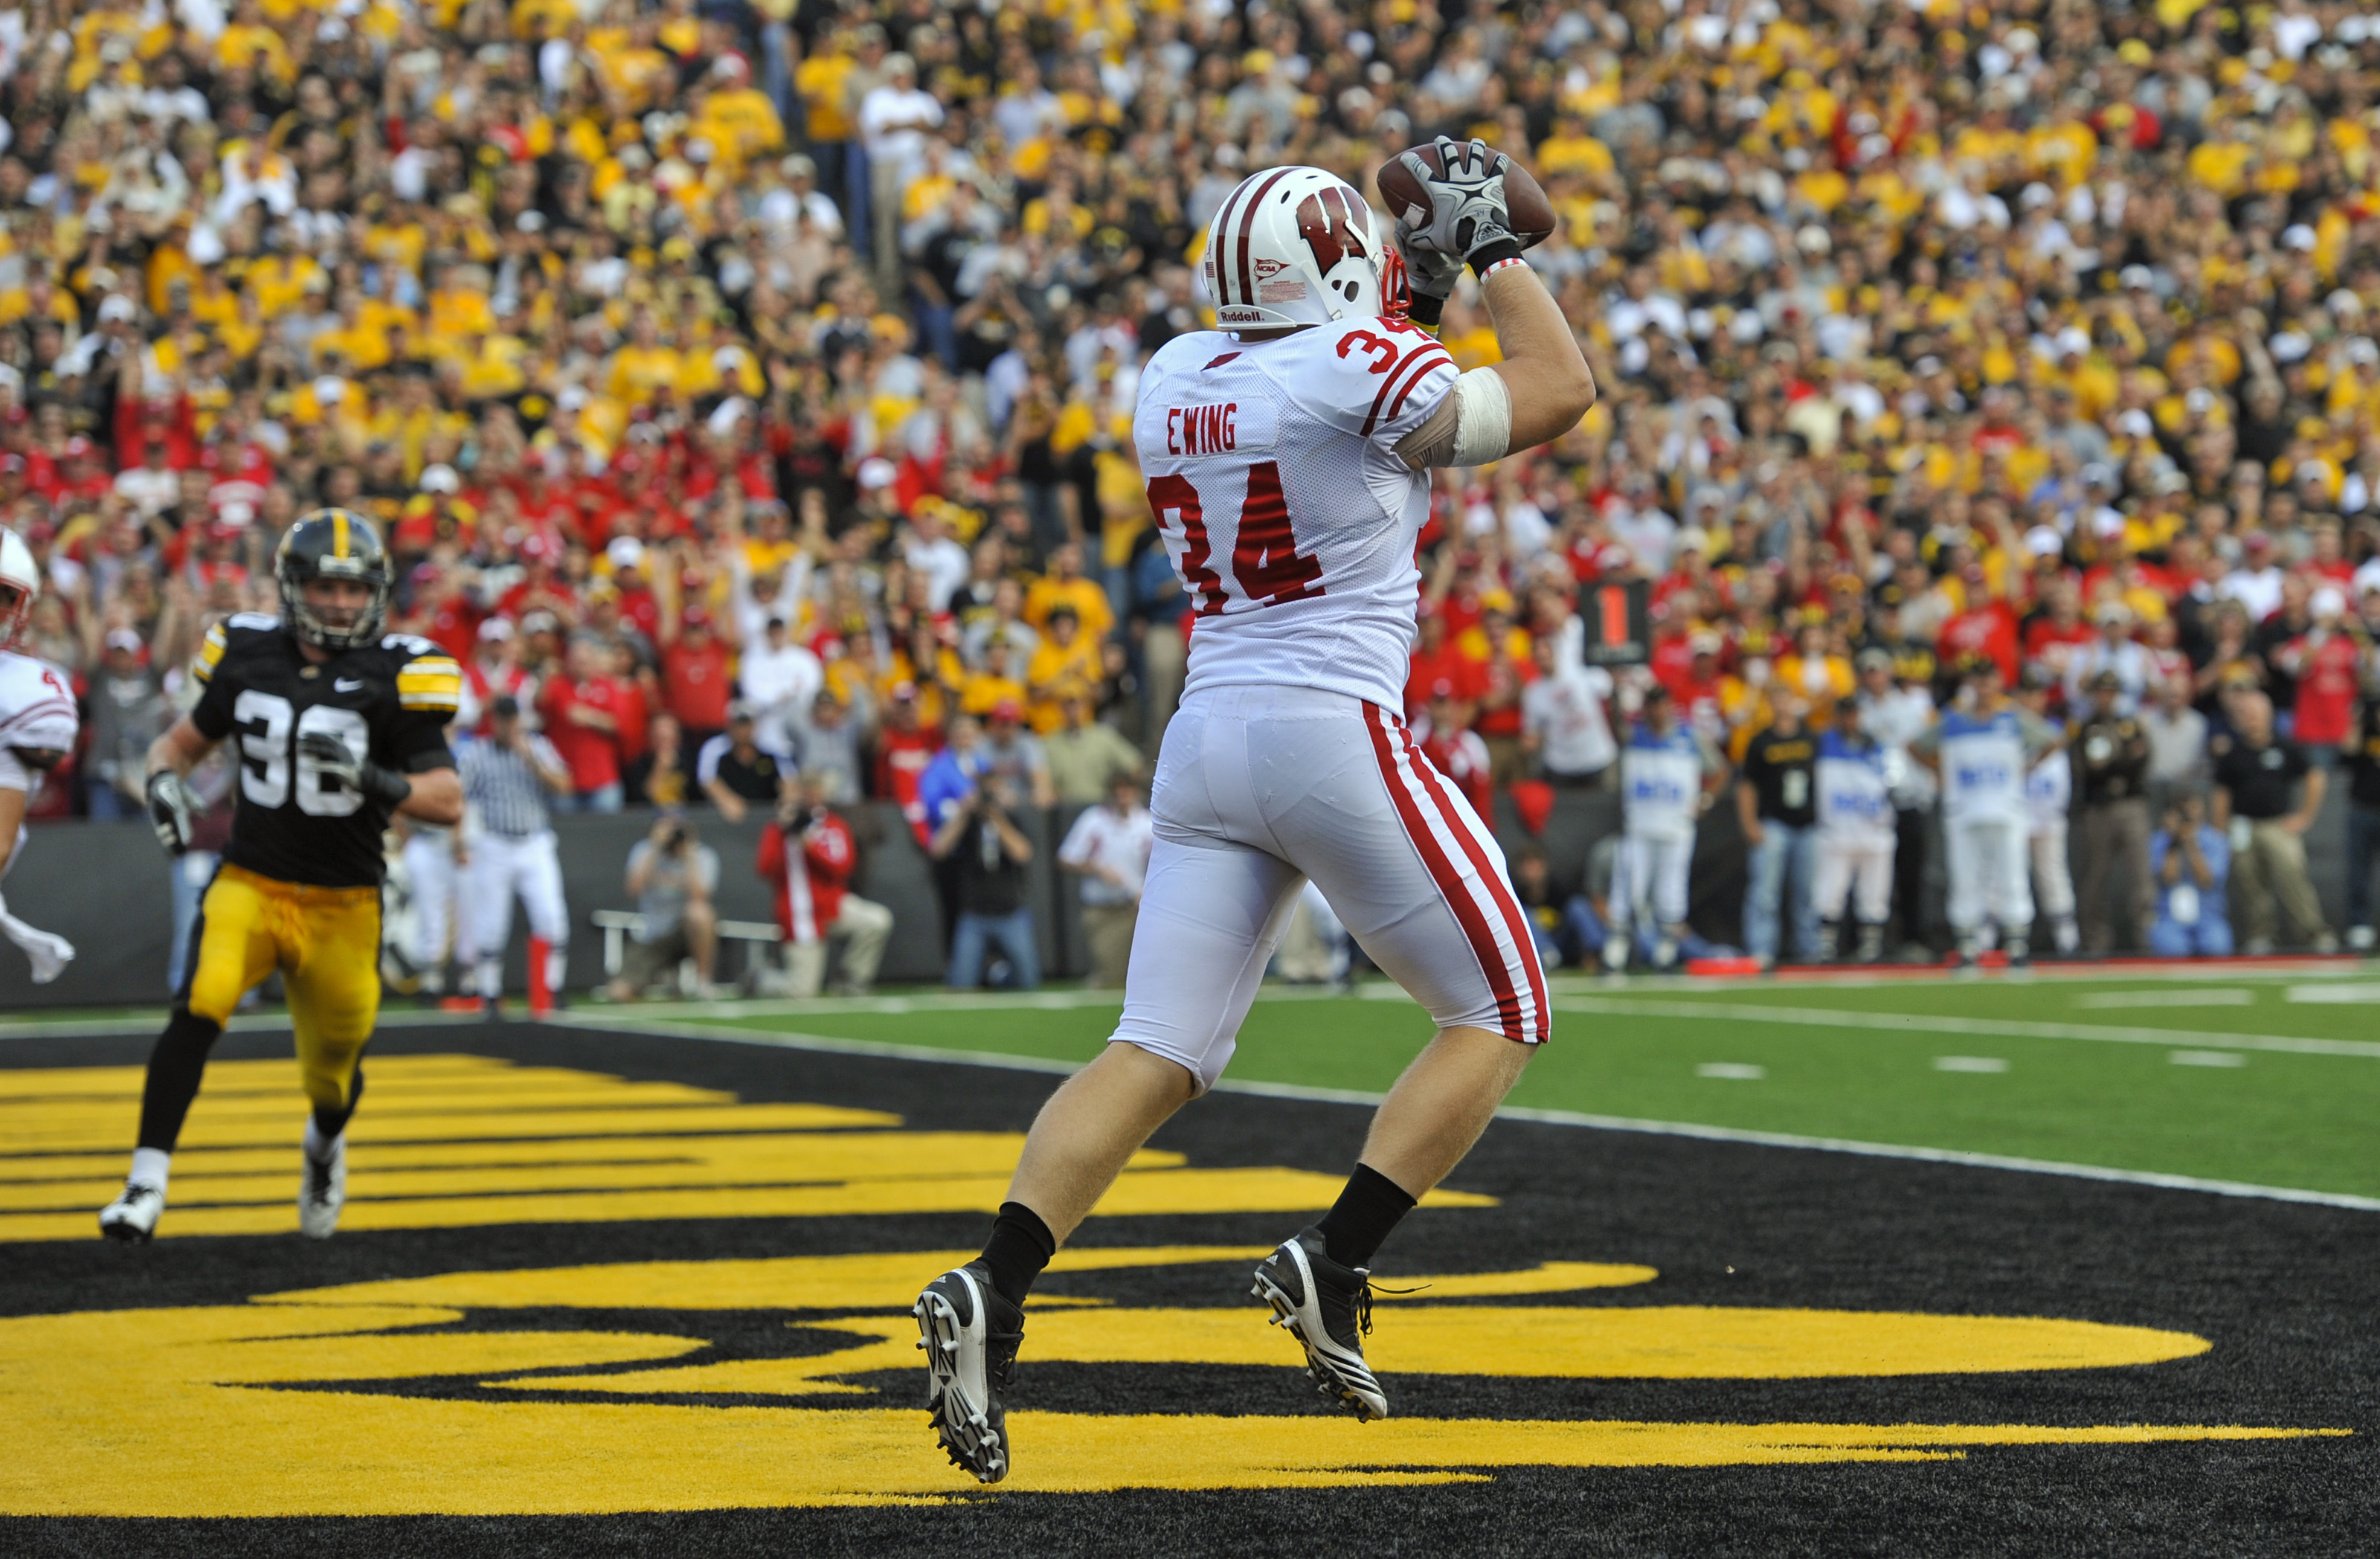 IOWA CITY, IA - OCTOBER 23- Running back Bradie Ewing #34 of the Wisconsin Badgers catches a touchdown pass during the first half of play against the University of Iowa Hawkeyes at Kinnick Stadium on October 23, 2010 in Iowa City, Iowa. Wisconsin won 31-3